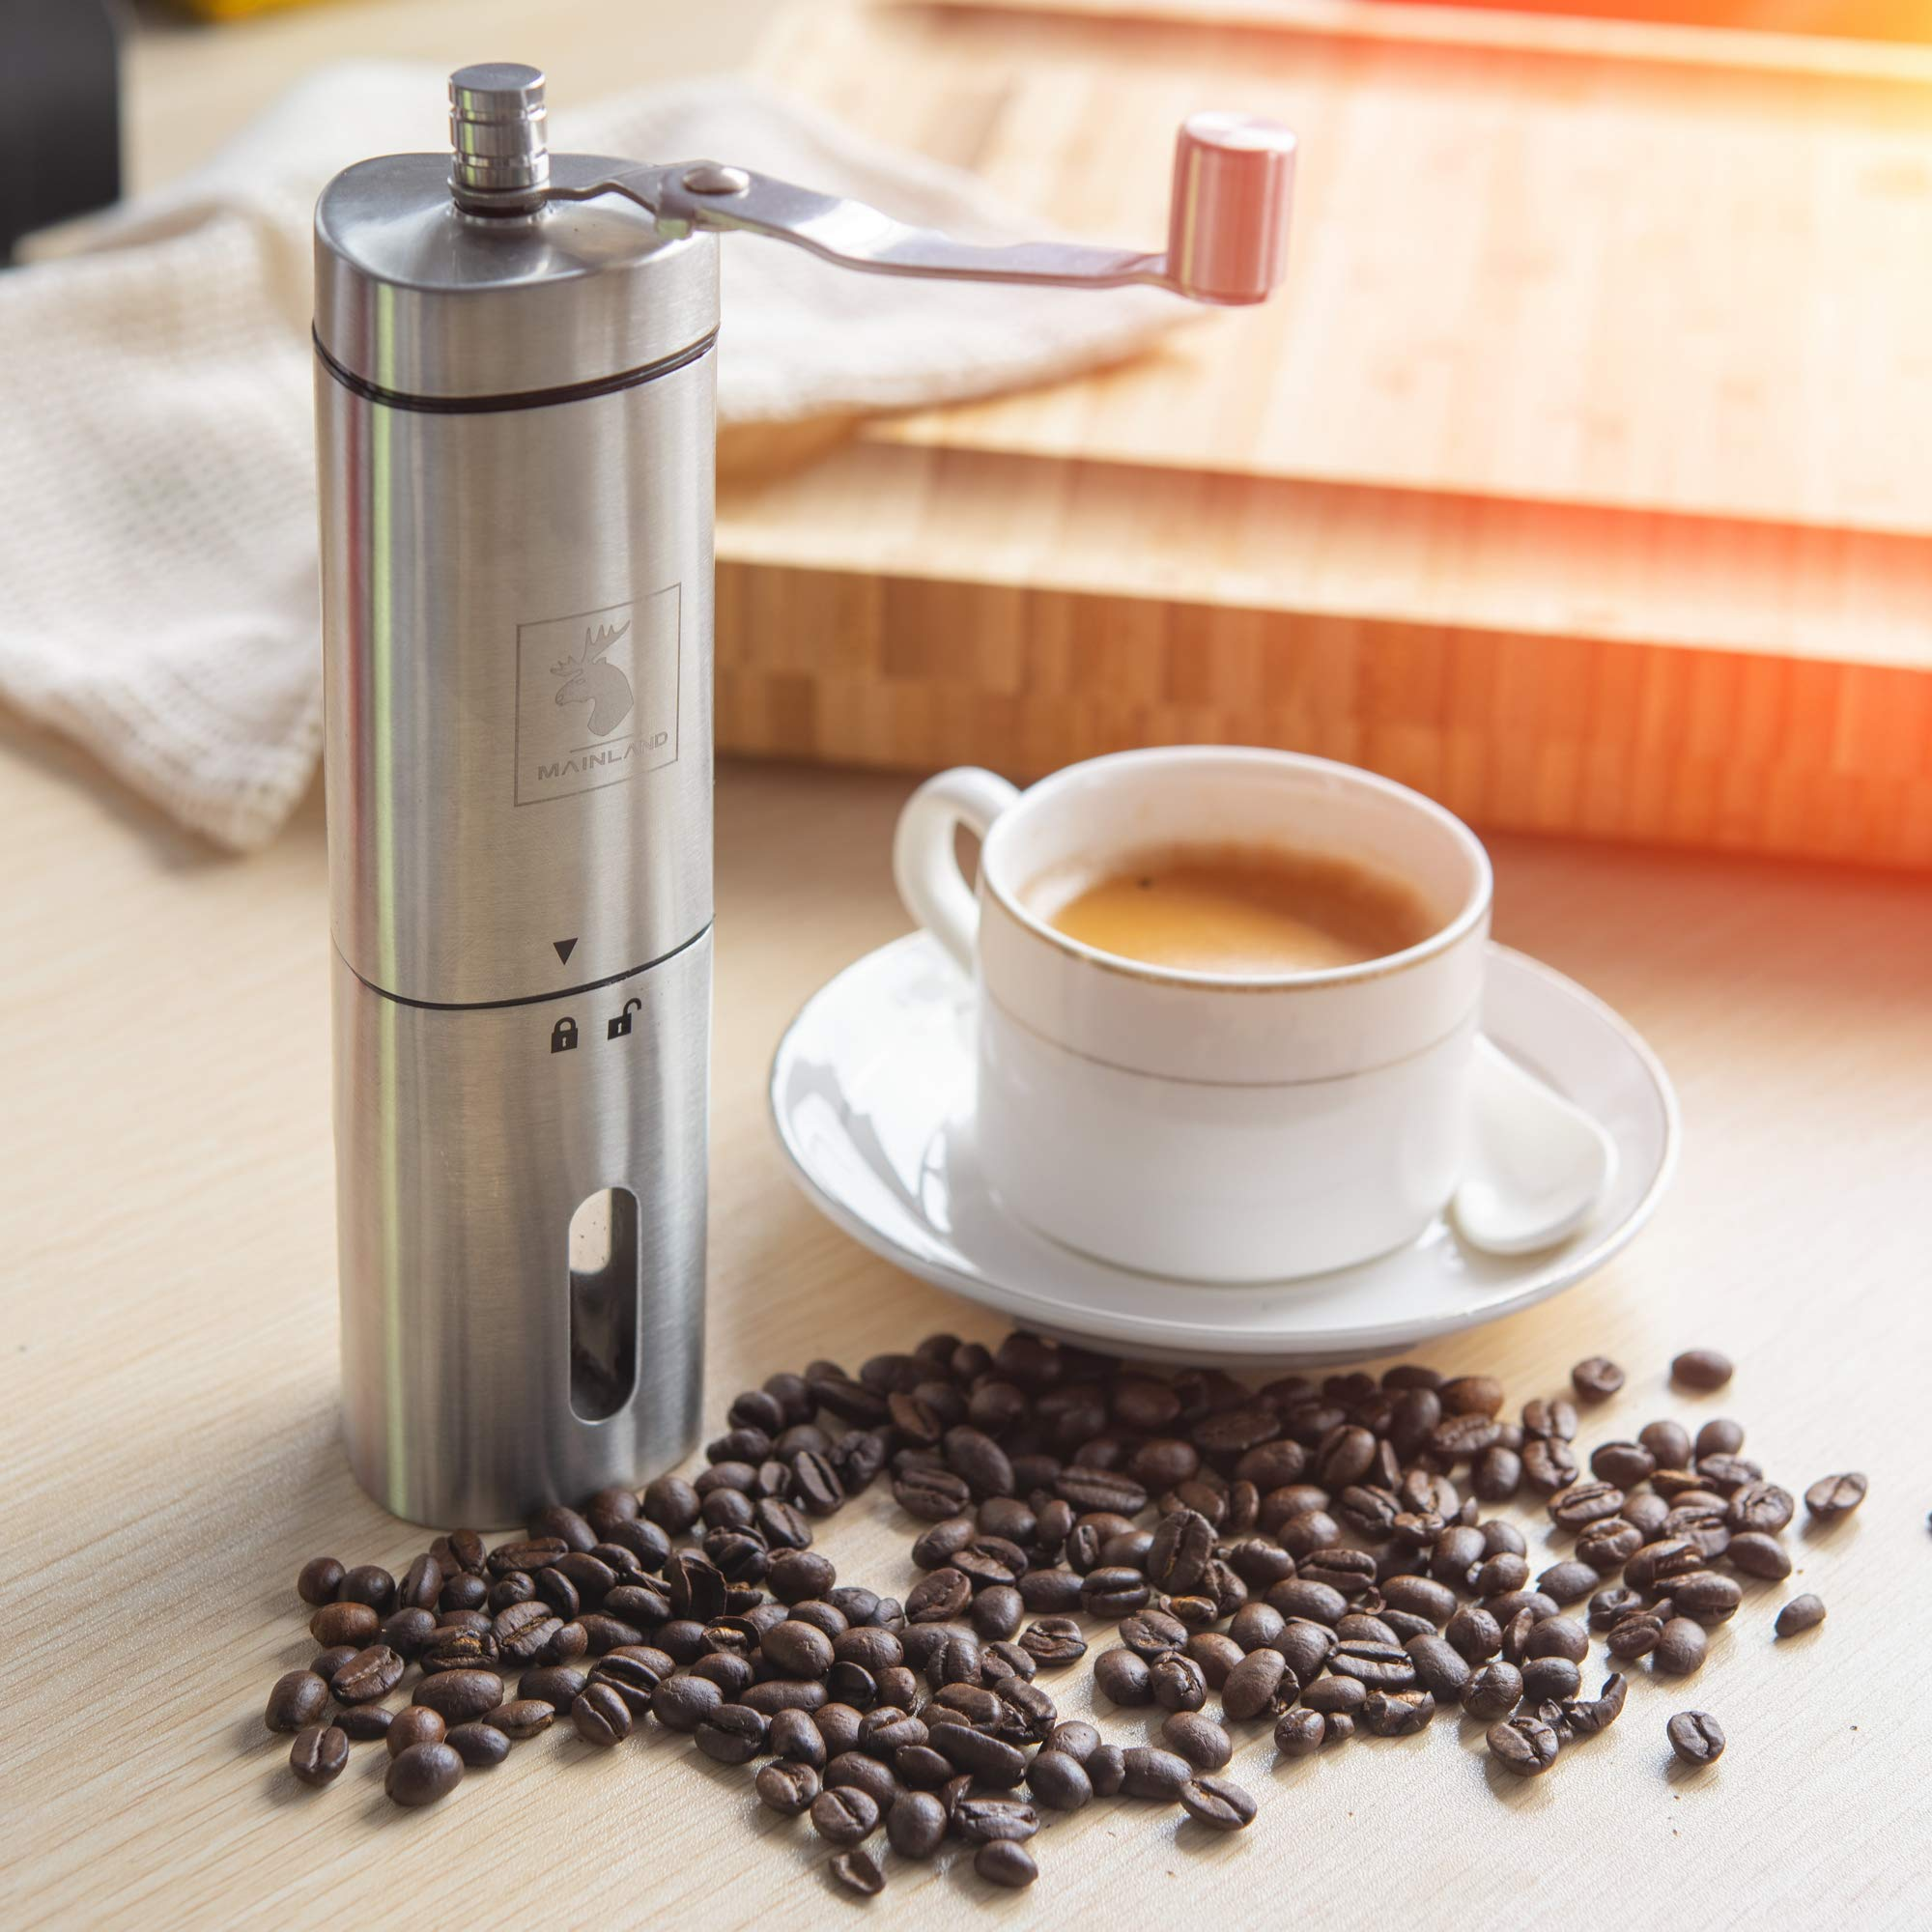 Manual Coffee Grinder by Mainland (Hand Held) Adjustable Fine, Medium, Coarse Grounds | Ceramic Burr Mill for Whole Bean Grinding | Home Kitchen, Office, Travel by Mainland (Image #6)